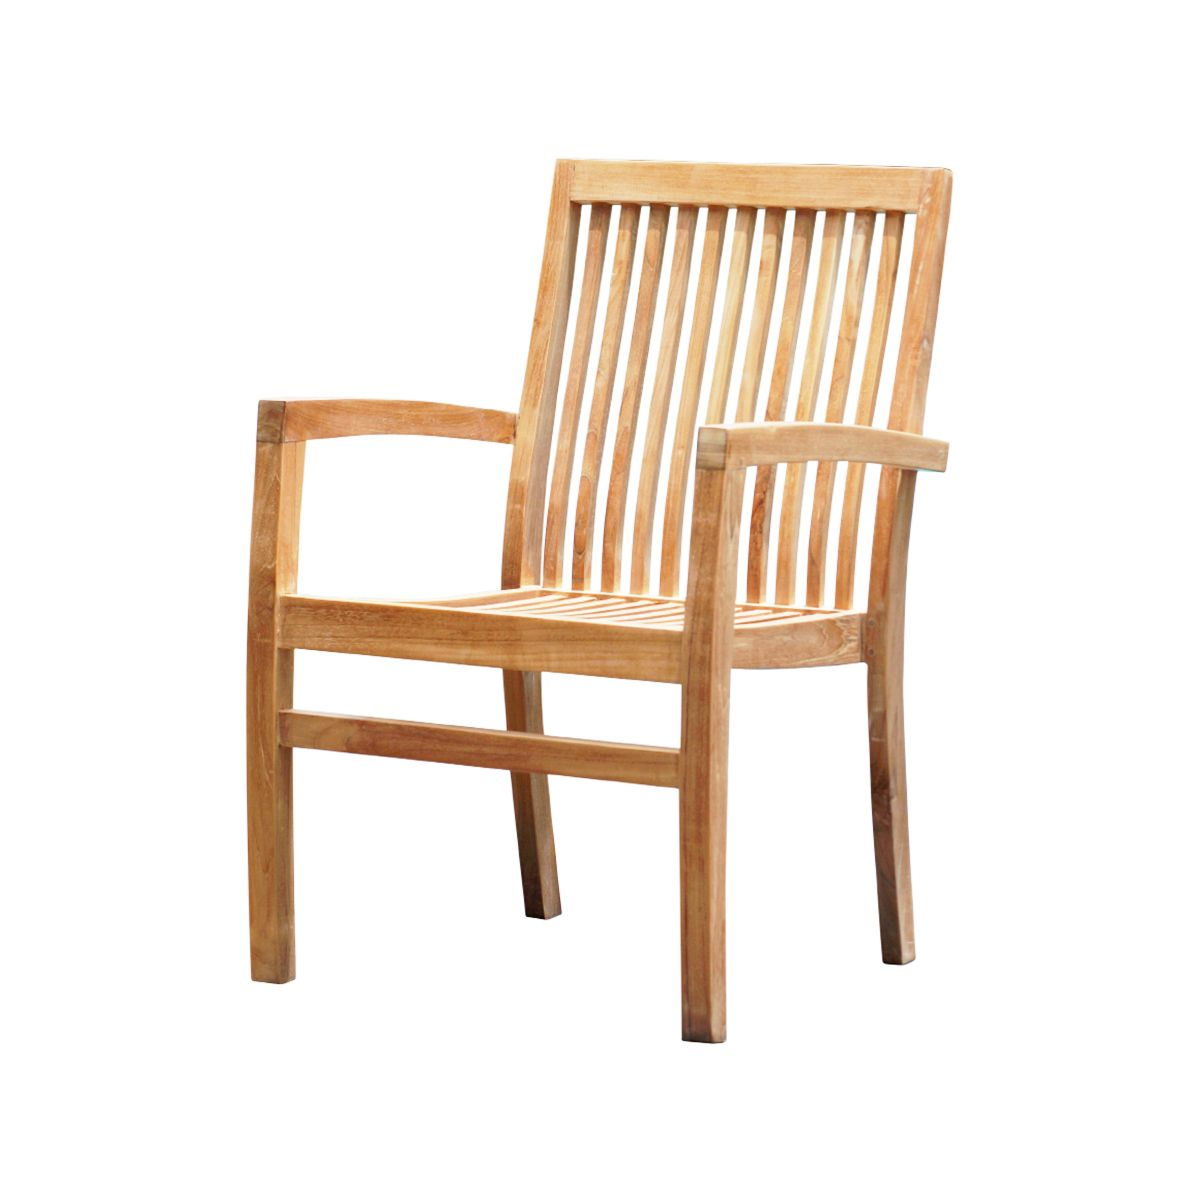 Garden outdoor chair made of solid teak wood indonesia furniture outdoor garden chair outdoorchair outdoorfurniture teakfurniture outdoorteak